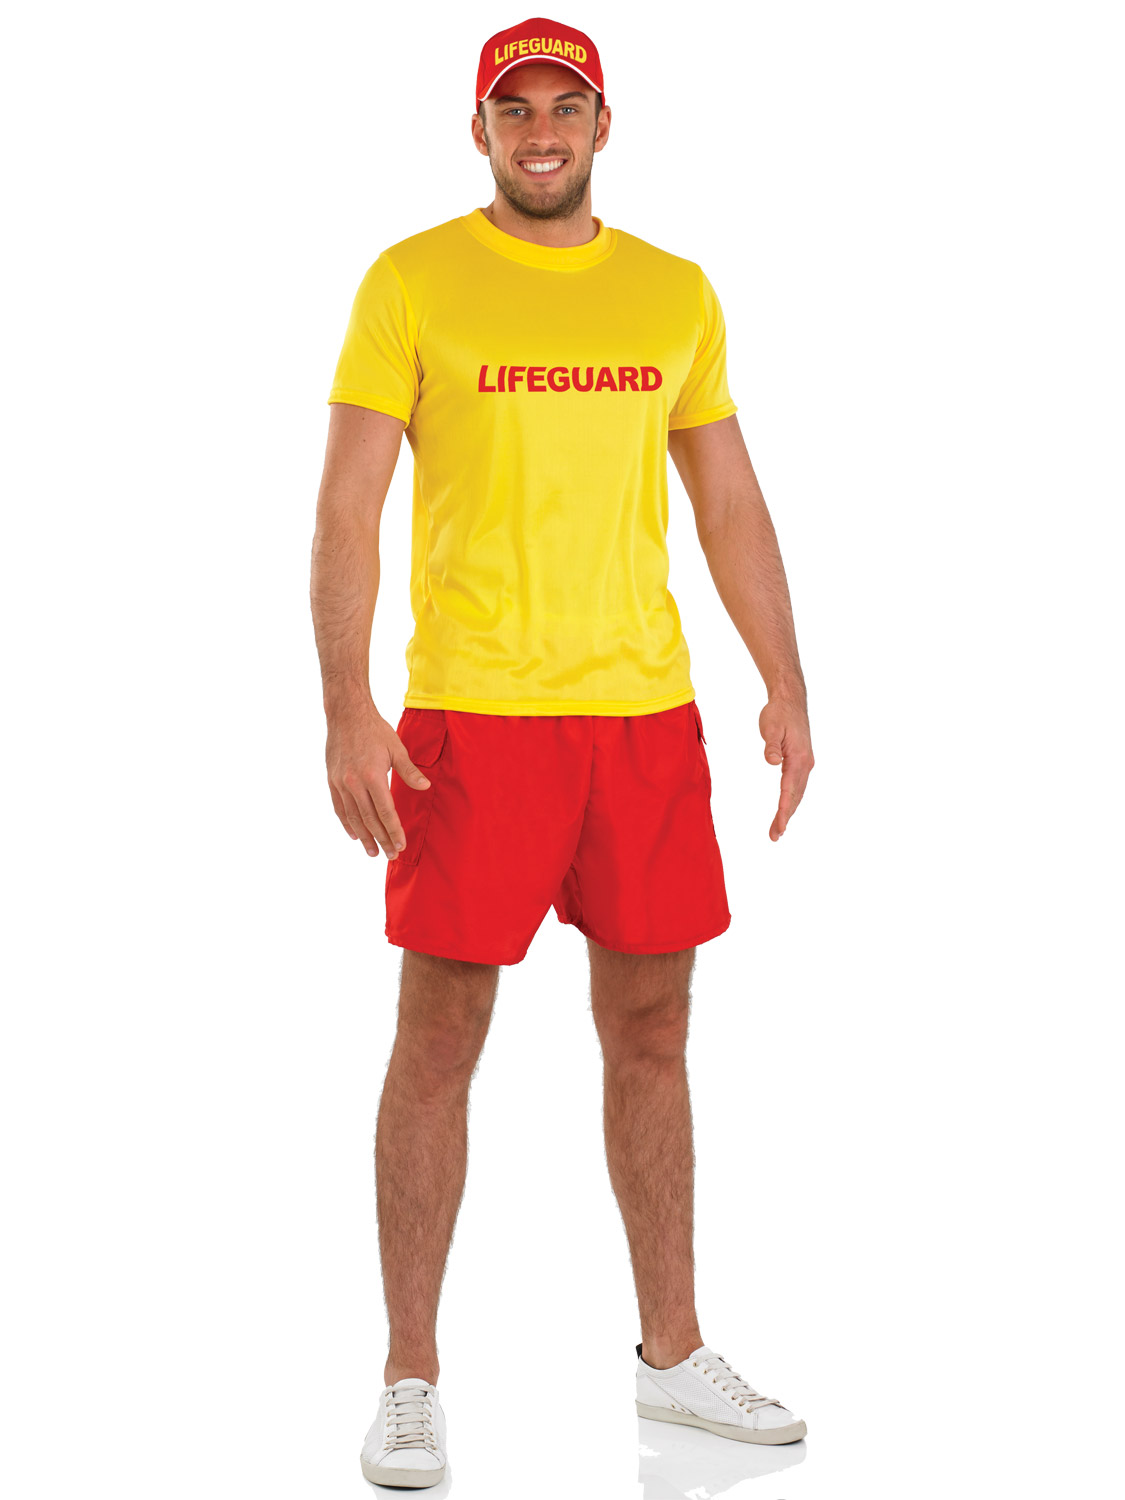 2b583e78f5b7 Men s Lifeguard Costume